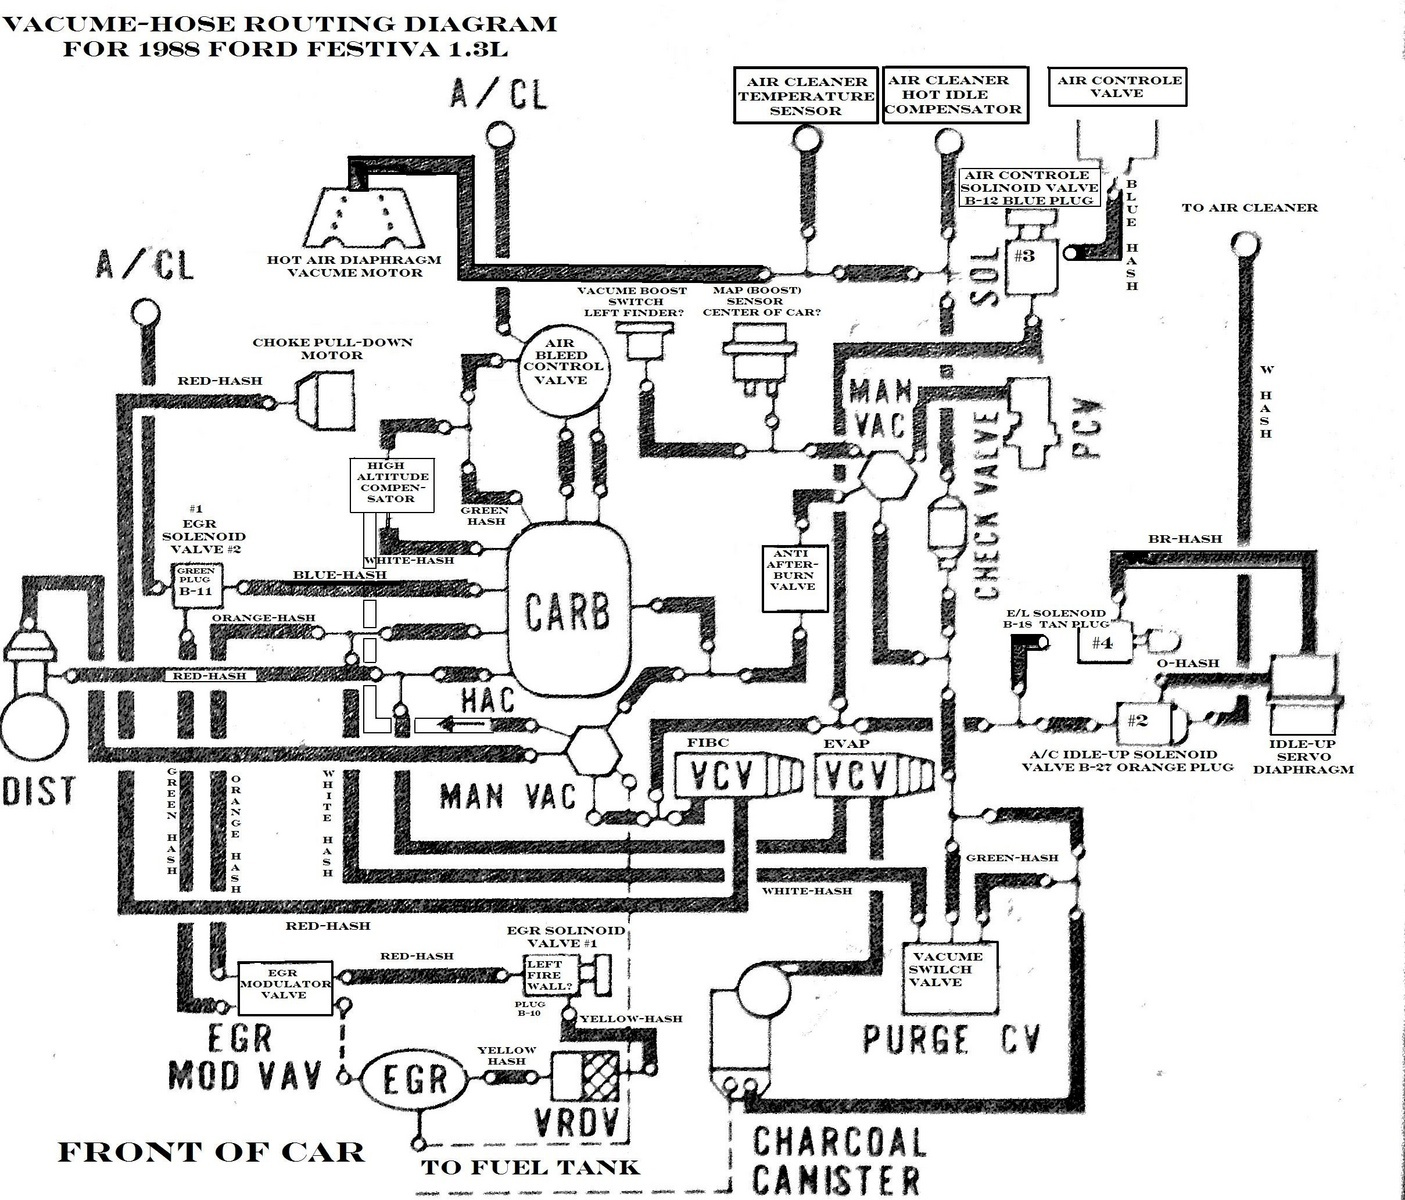 1997 ford festiva wiring diagram